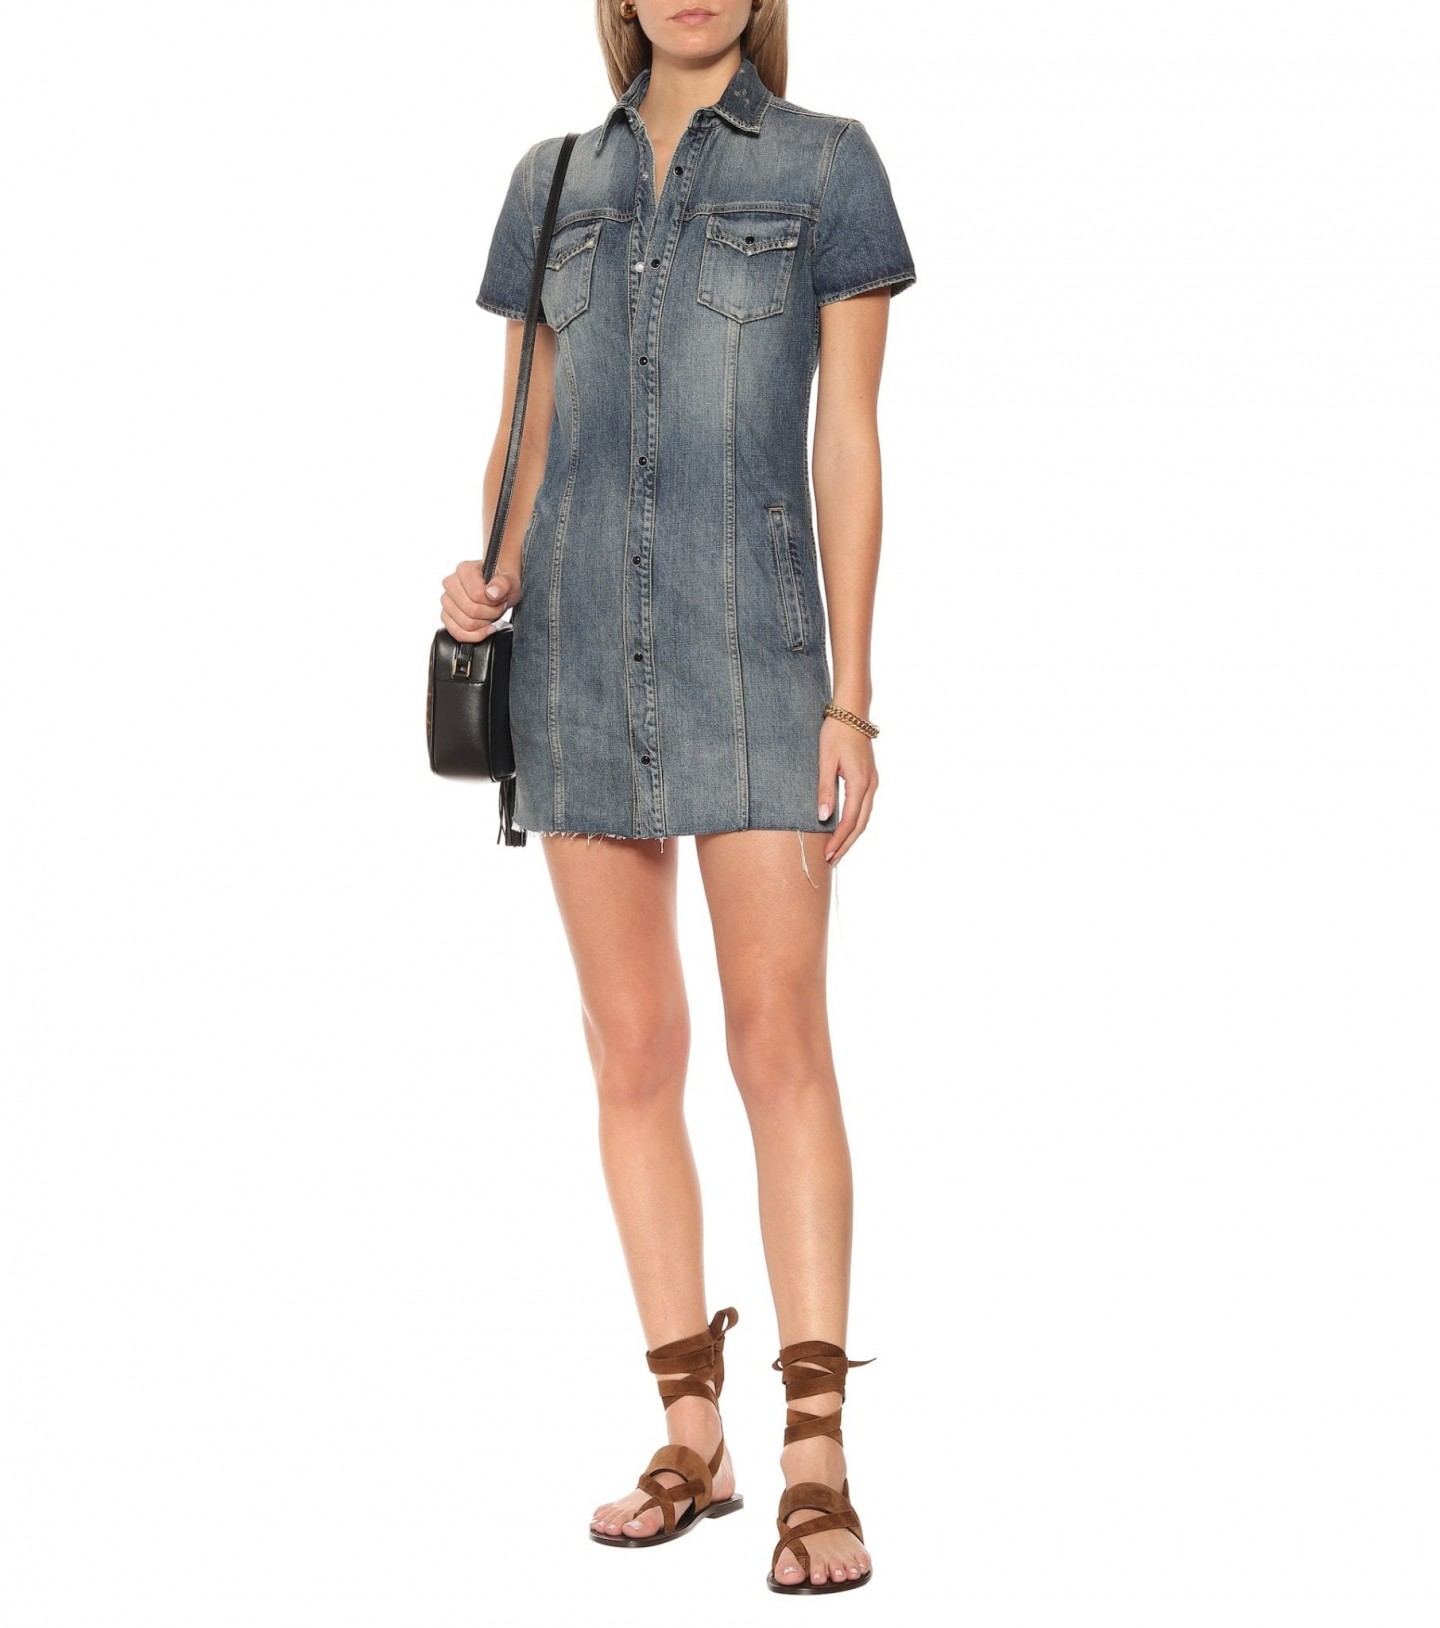 SAINT LAURENT Denim Mini Dress